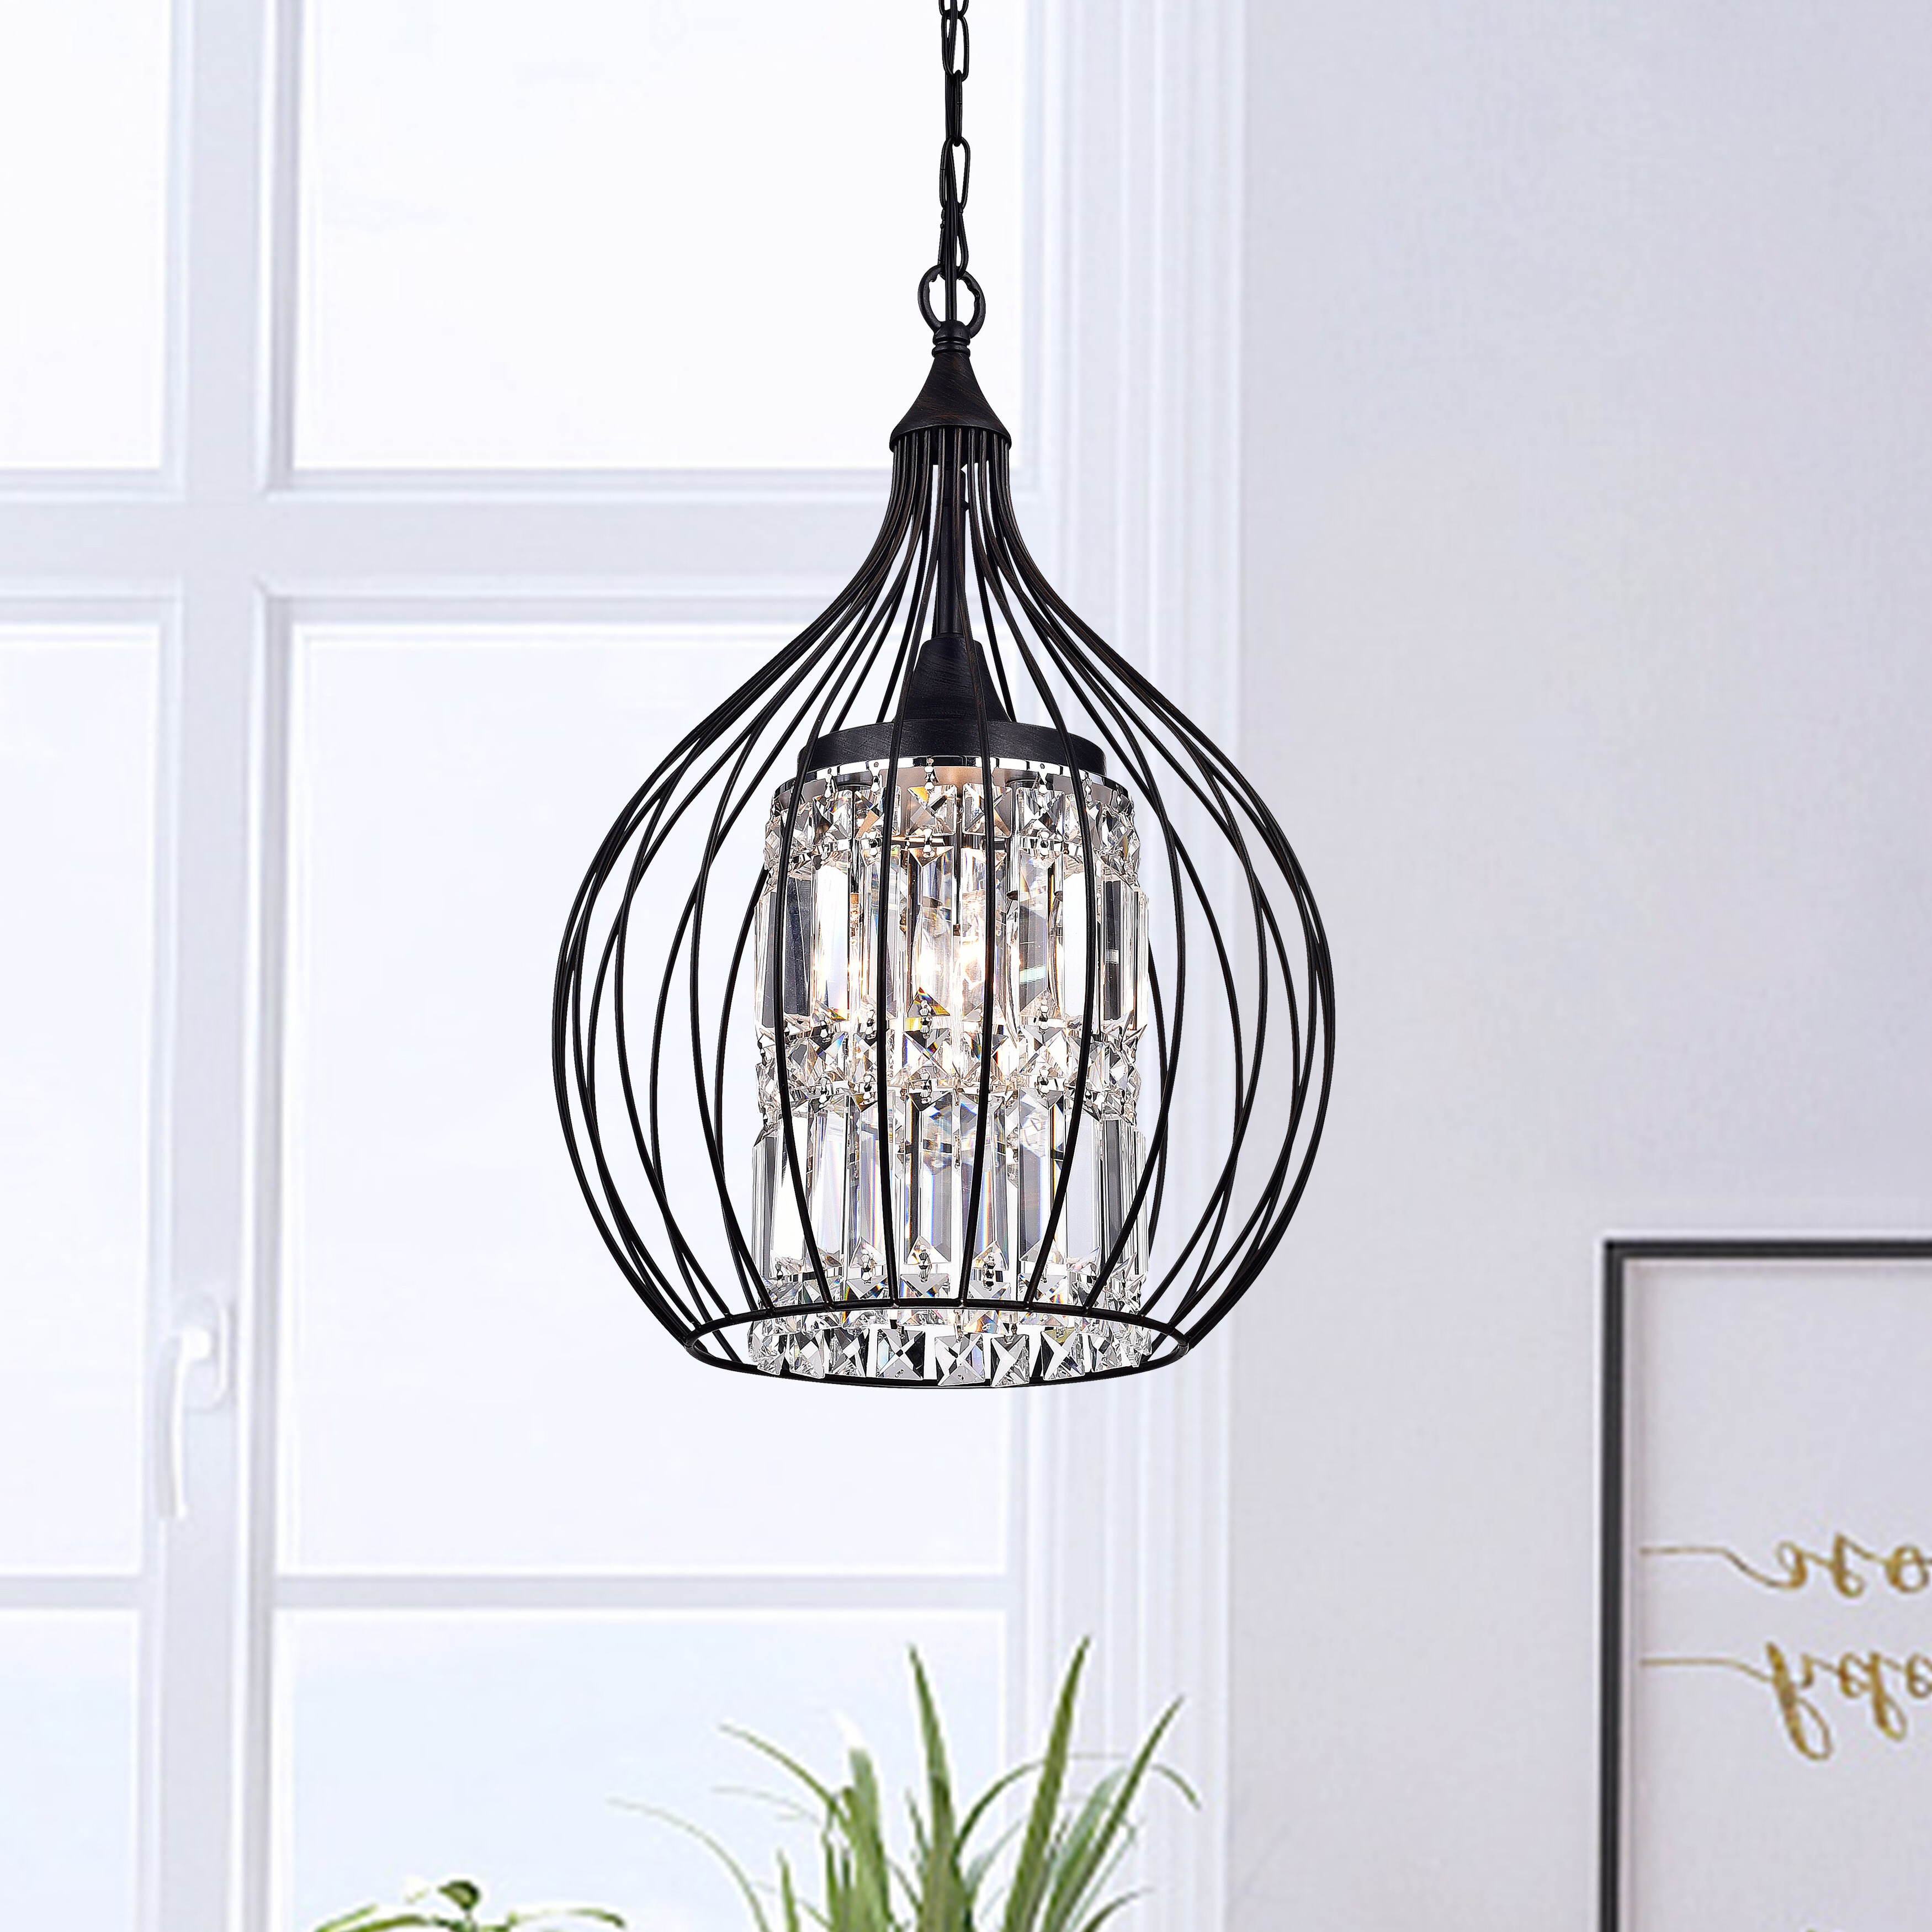 Widely Used Dirksen 3 Light Single Cylinder Chandeliers Intended For Richwood 3 Light Globe Chandelier (View 6 of 20)